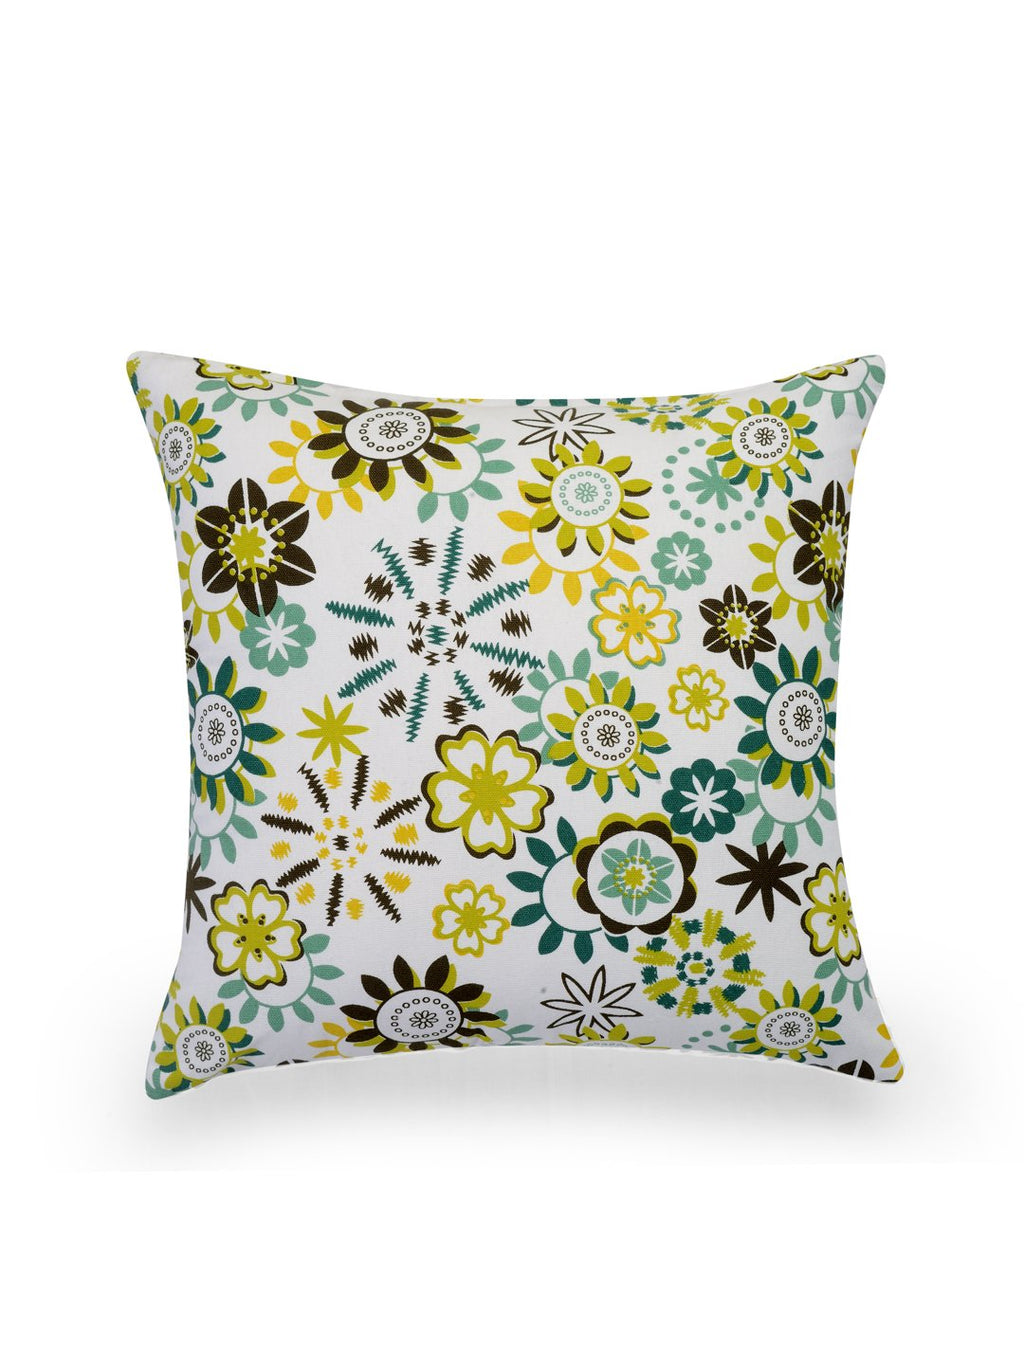 Hand-painted Flair Oasis Cushion Covers (Set of 5) - RANGRAGE - 2